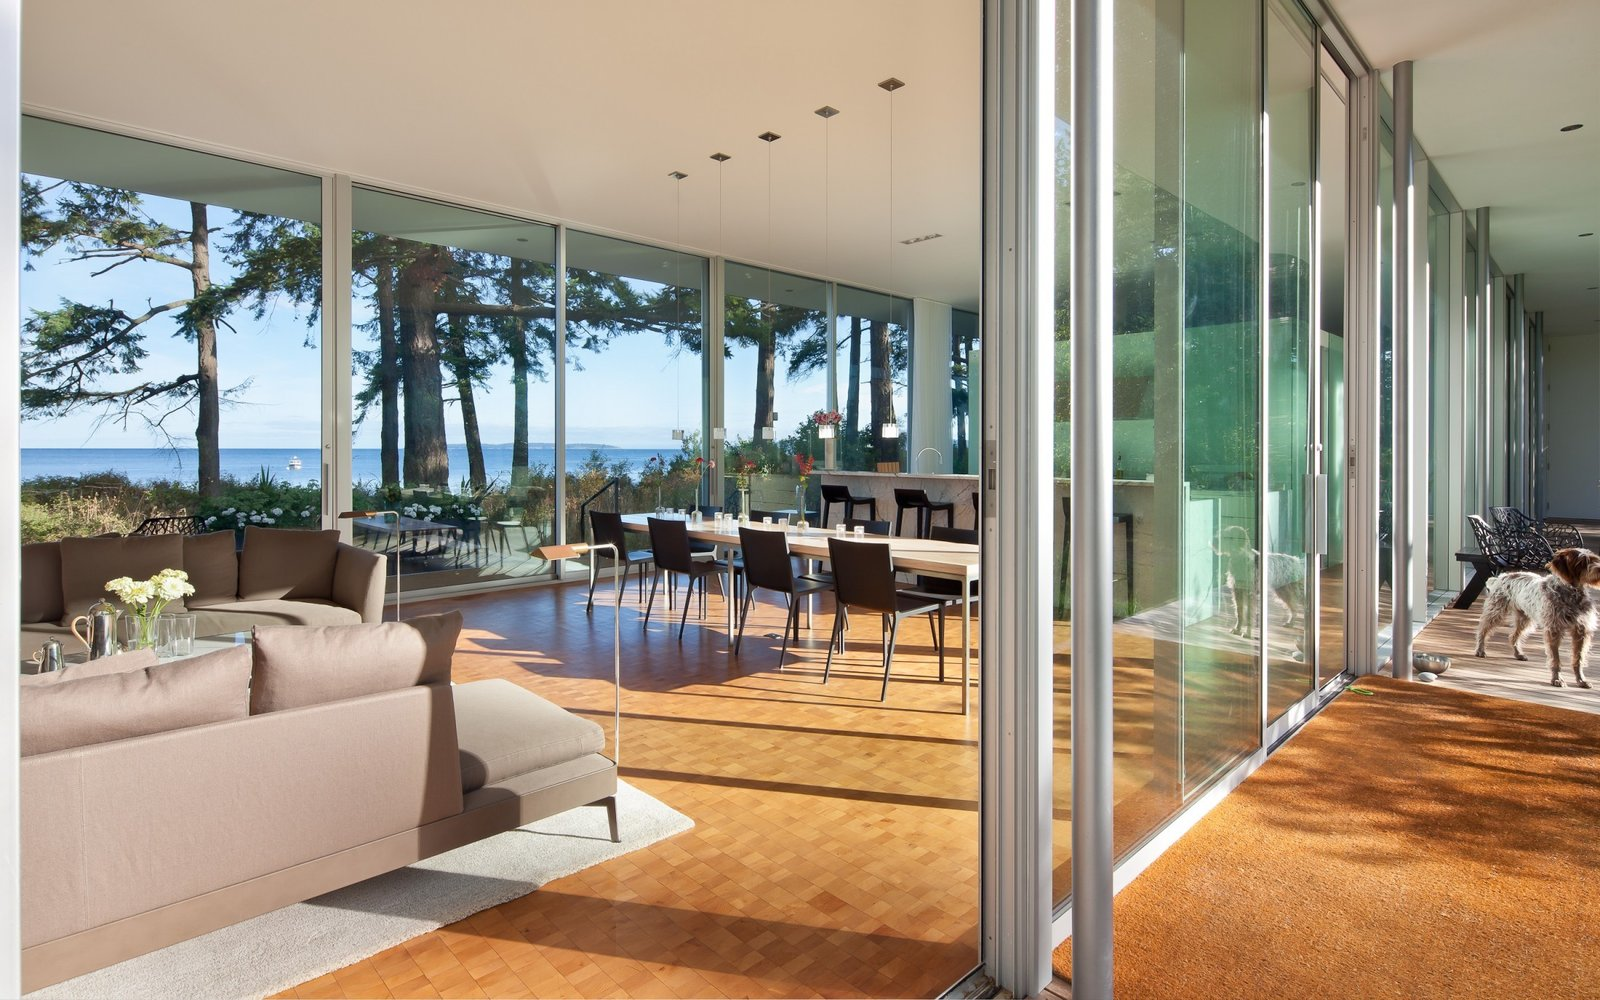 Dining, Accent, Table, Stools, Pendant, Recessed, Chair, Medium Hardwood, and Ceiling View into the open living dining kitchen space and the transparency of the sliding glass doors  Best Dining Table Pendant Accent Stools Chair Photos from North Beach Residence